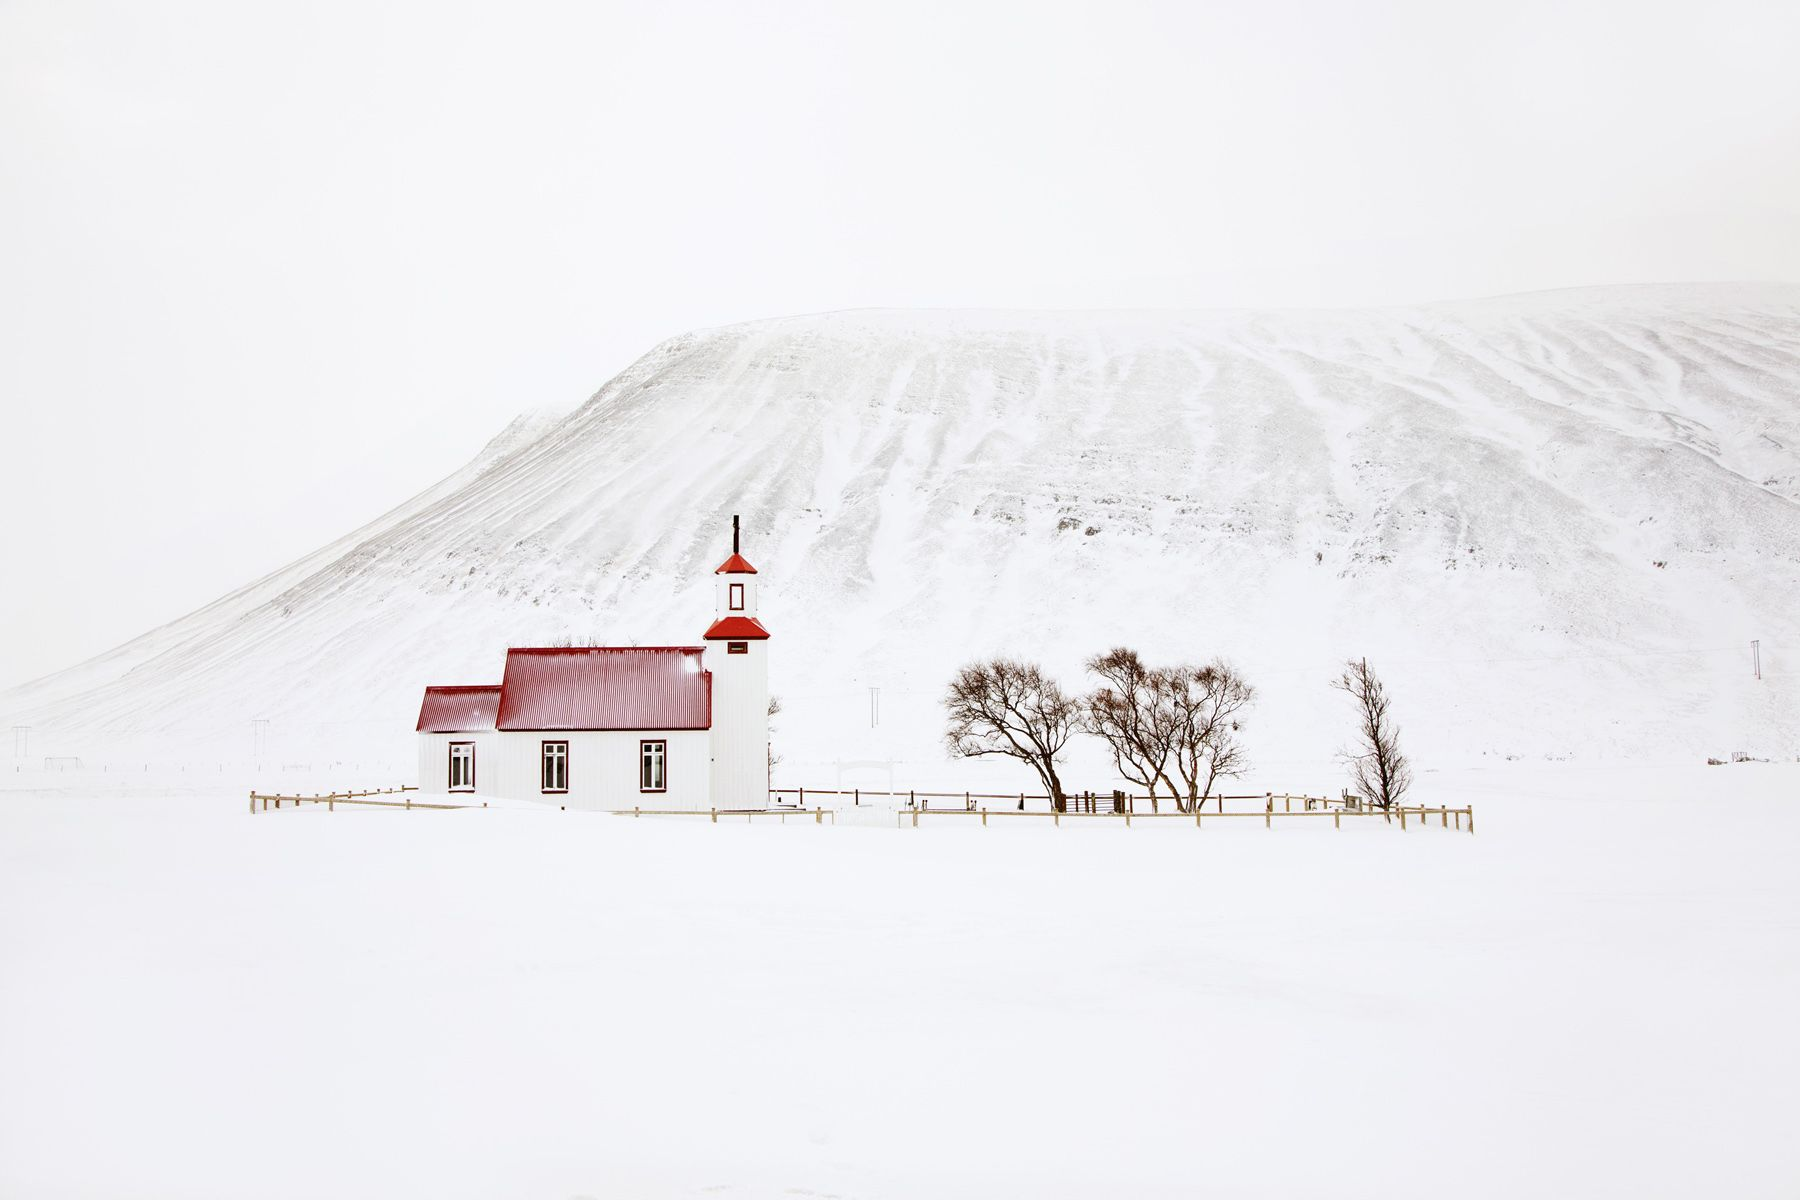 Chapelle blanche,Christophe Jacrot,Photographie contemporaine